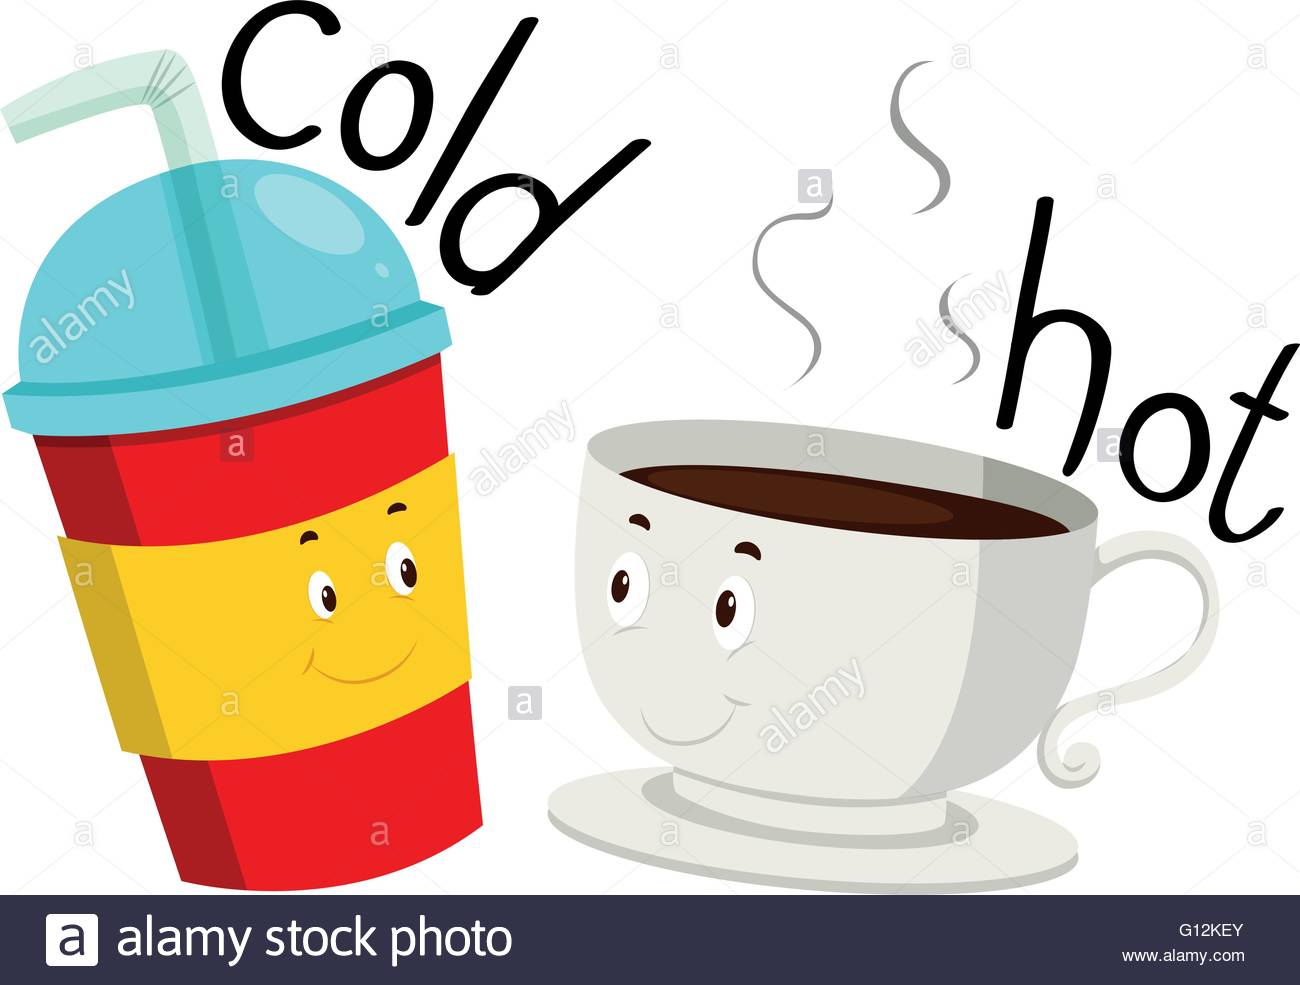 1300x985 Opposite Adjective Cold And Hot Illustration Stock Vector Art